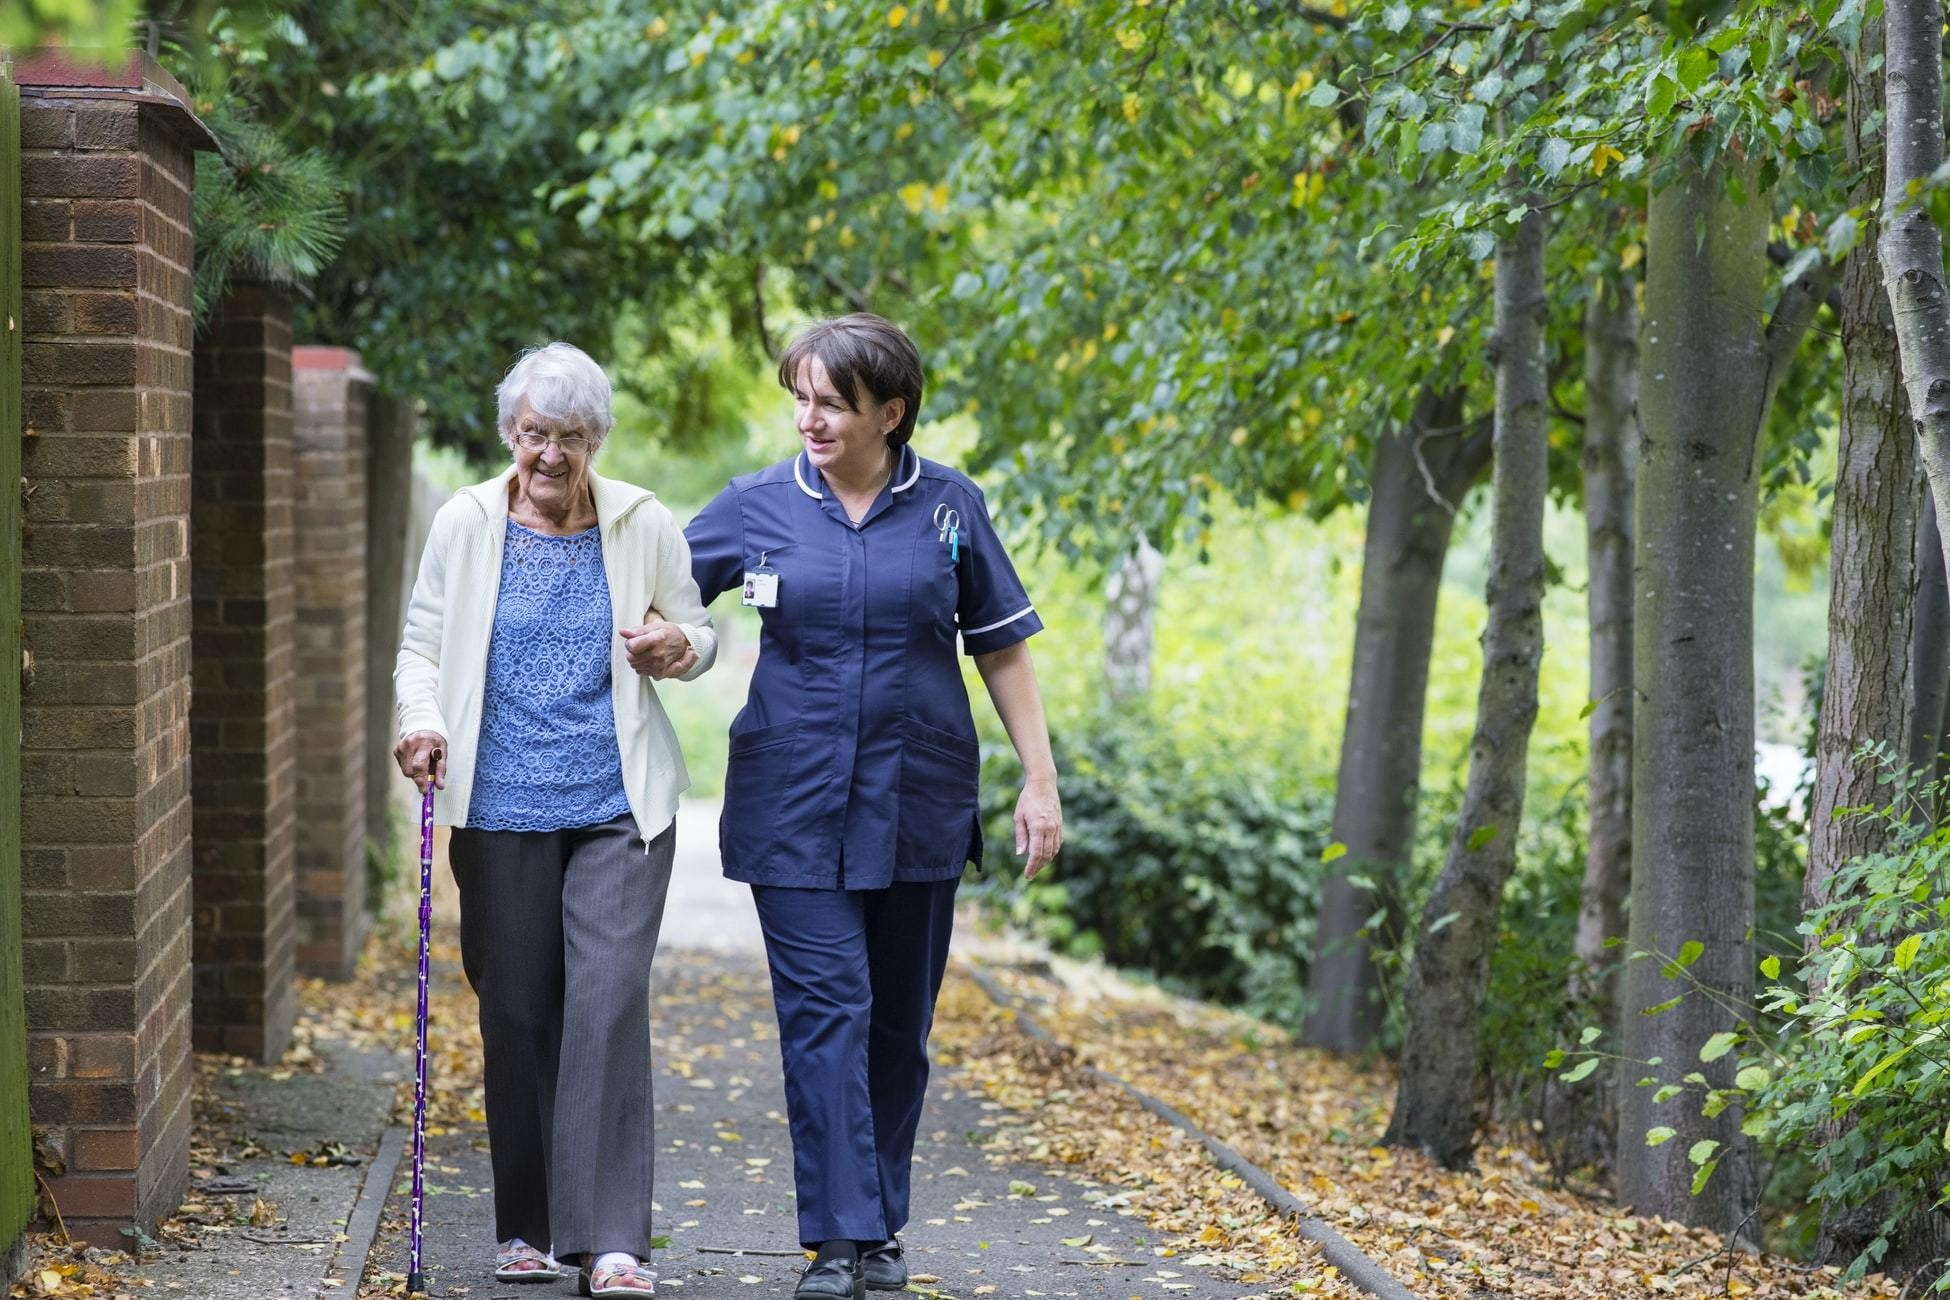 image of a care worker walking with an elderly lady